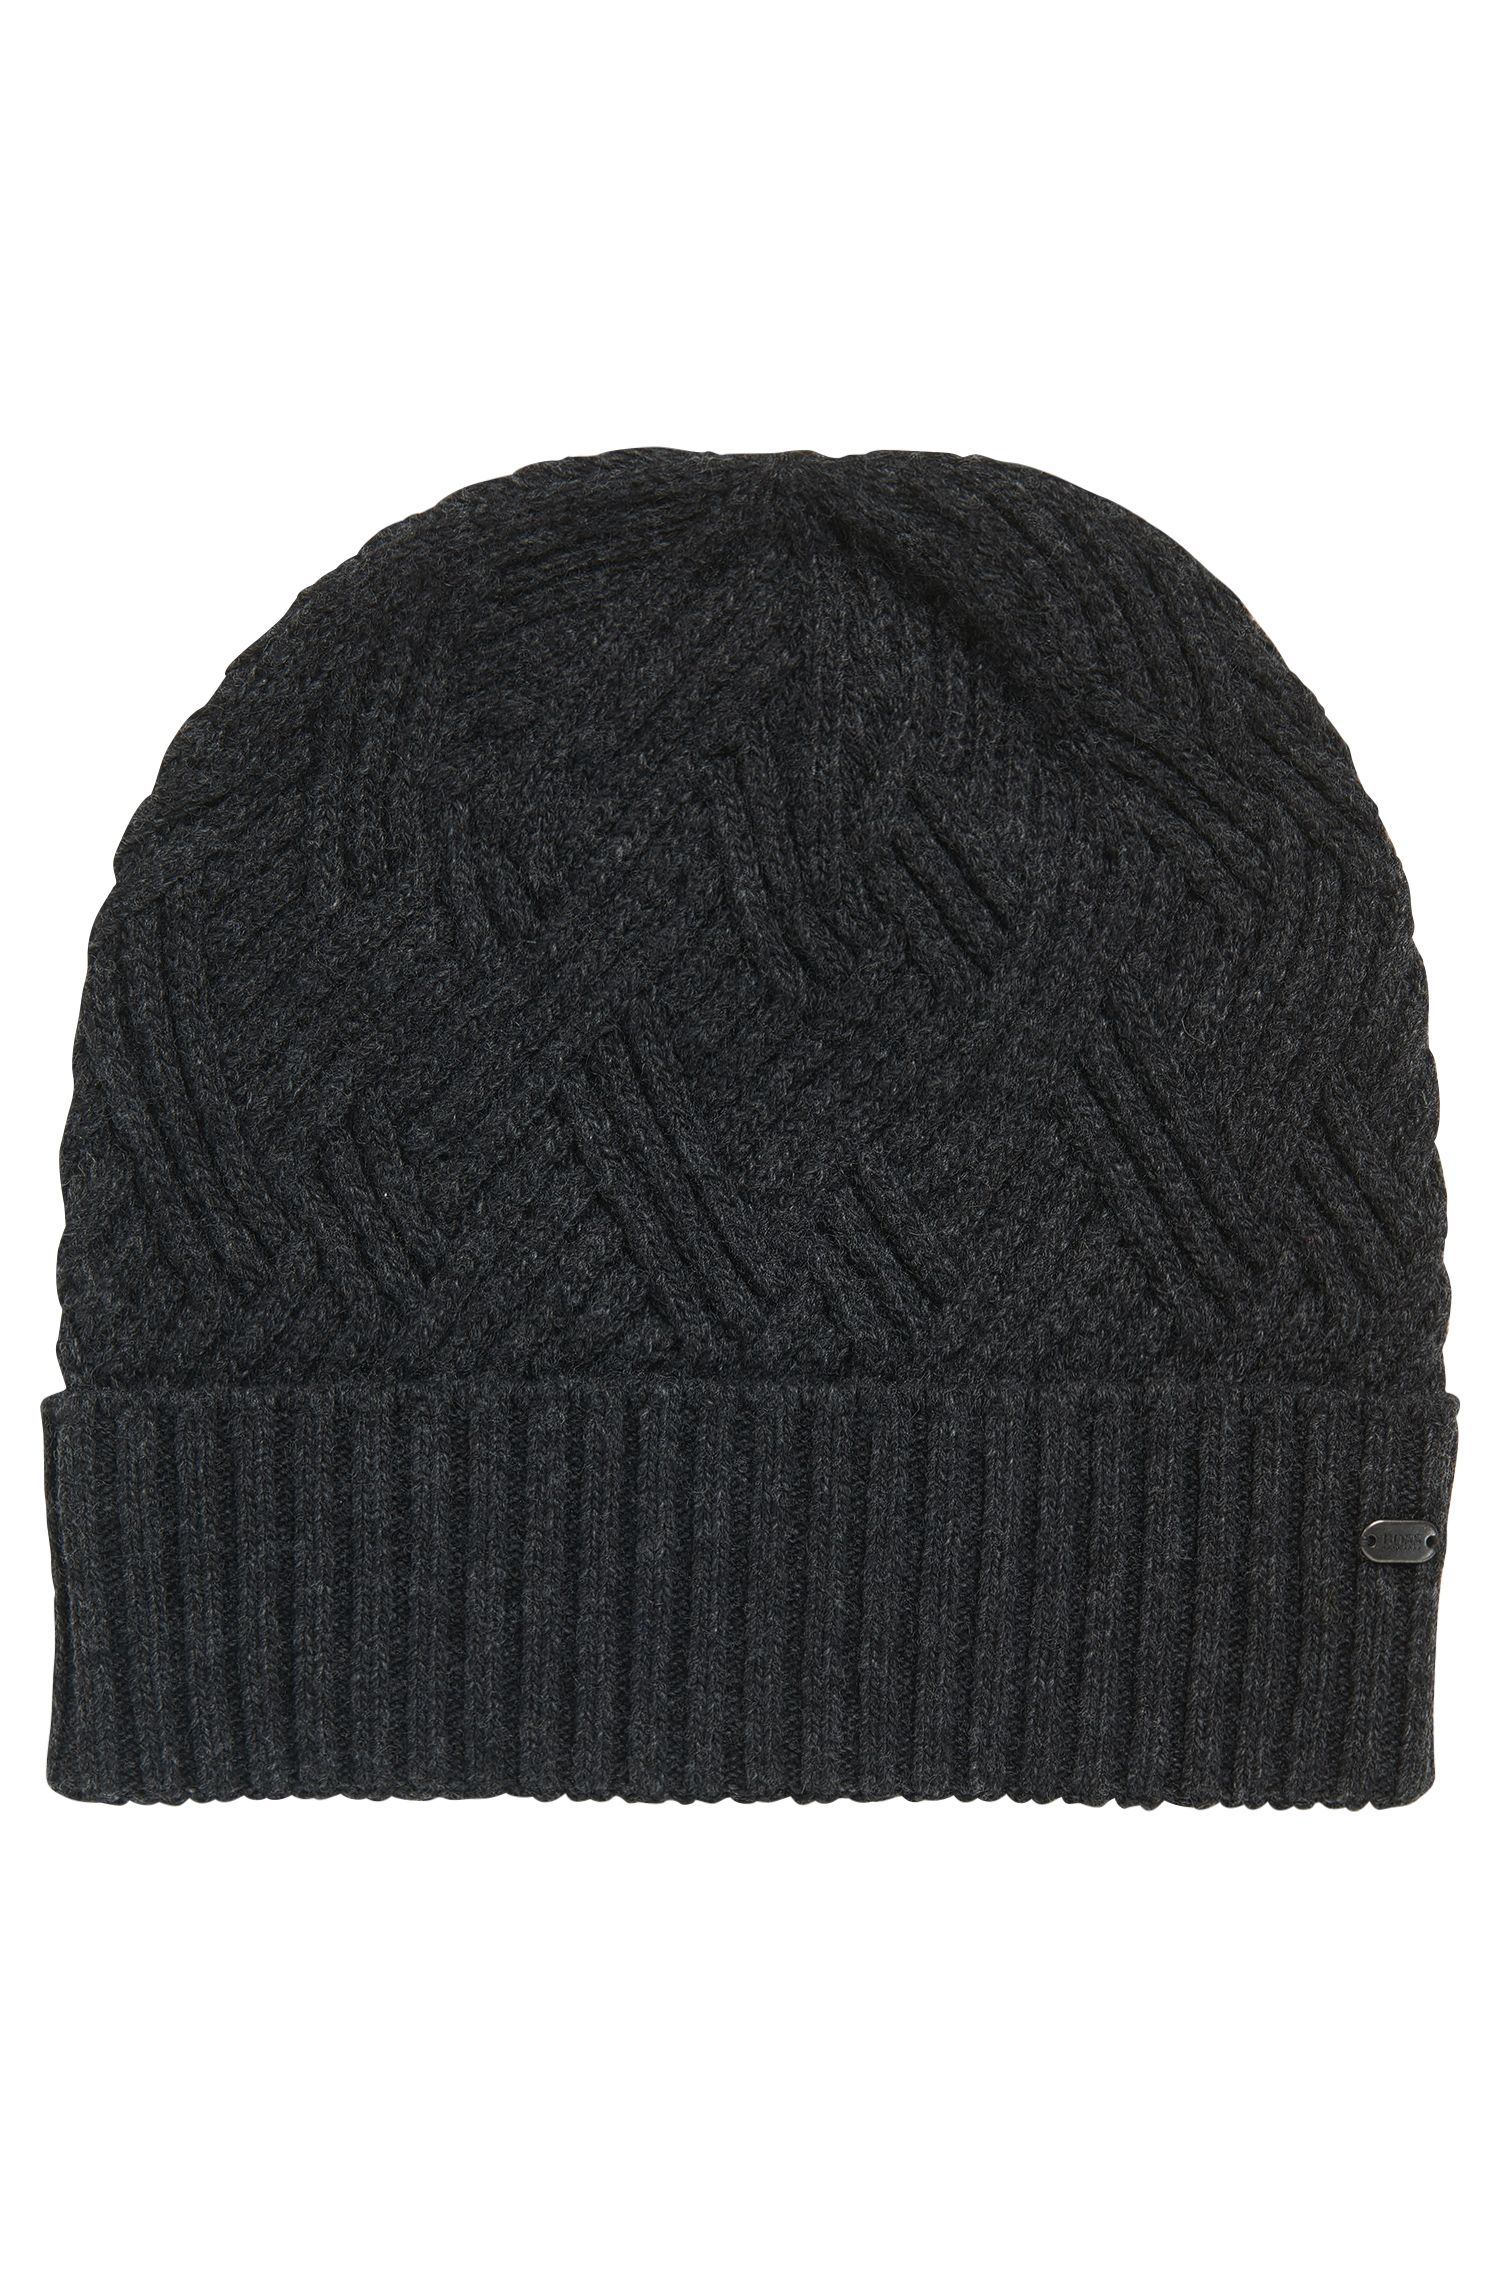 Cable-knit beanie hat